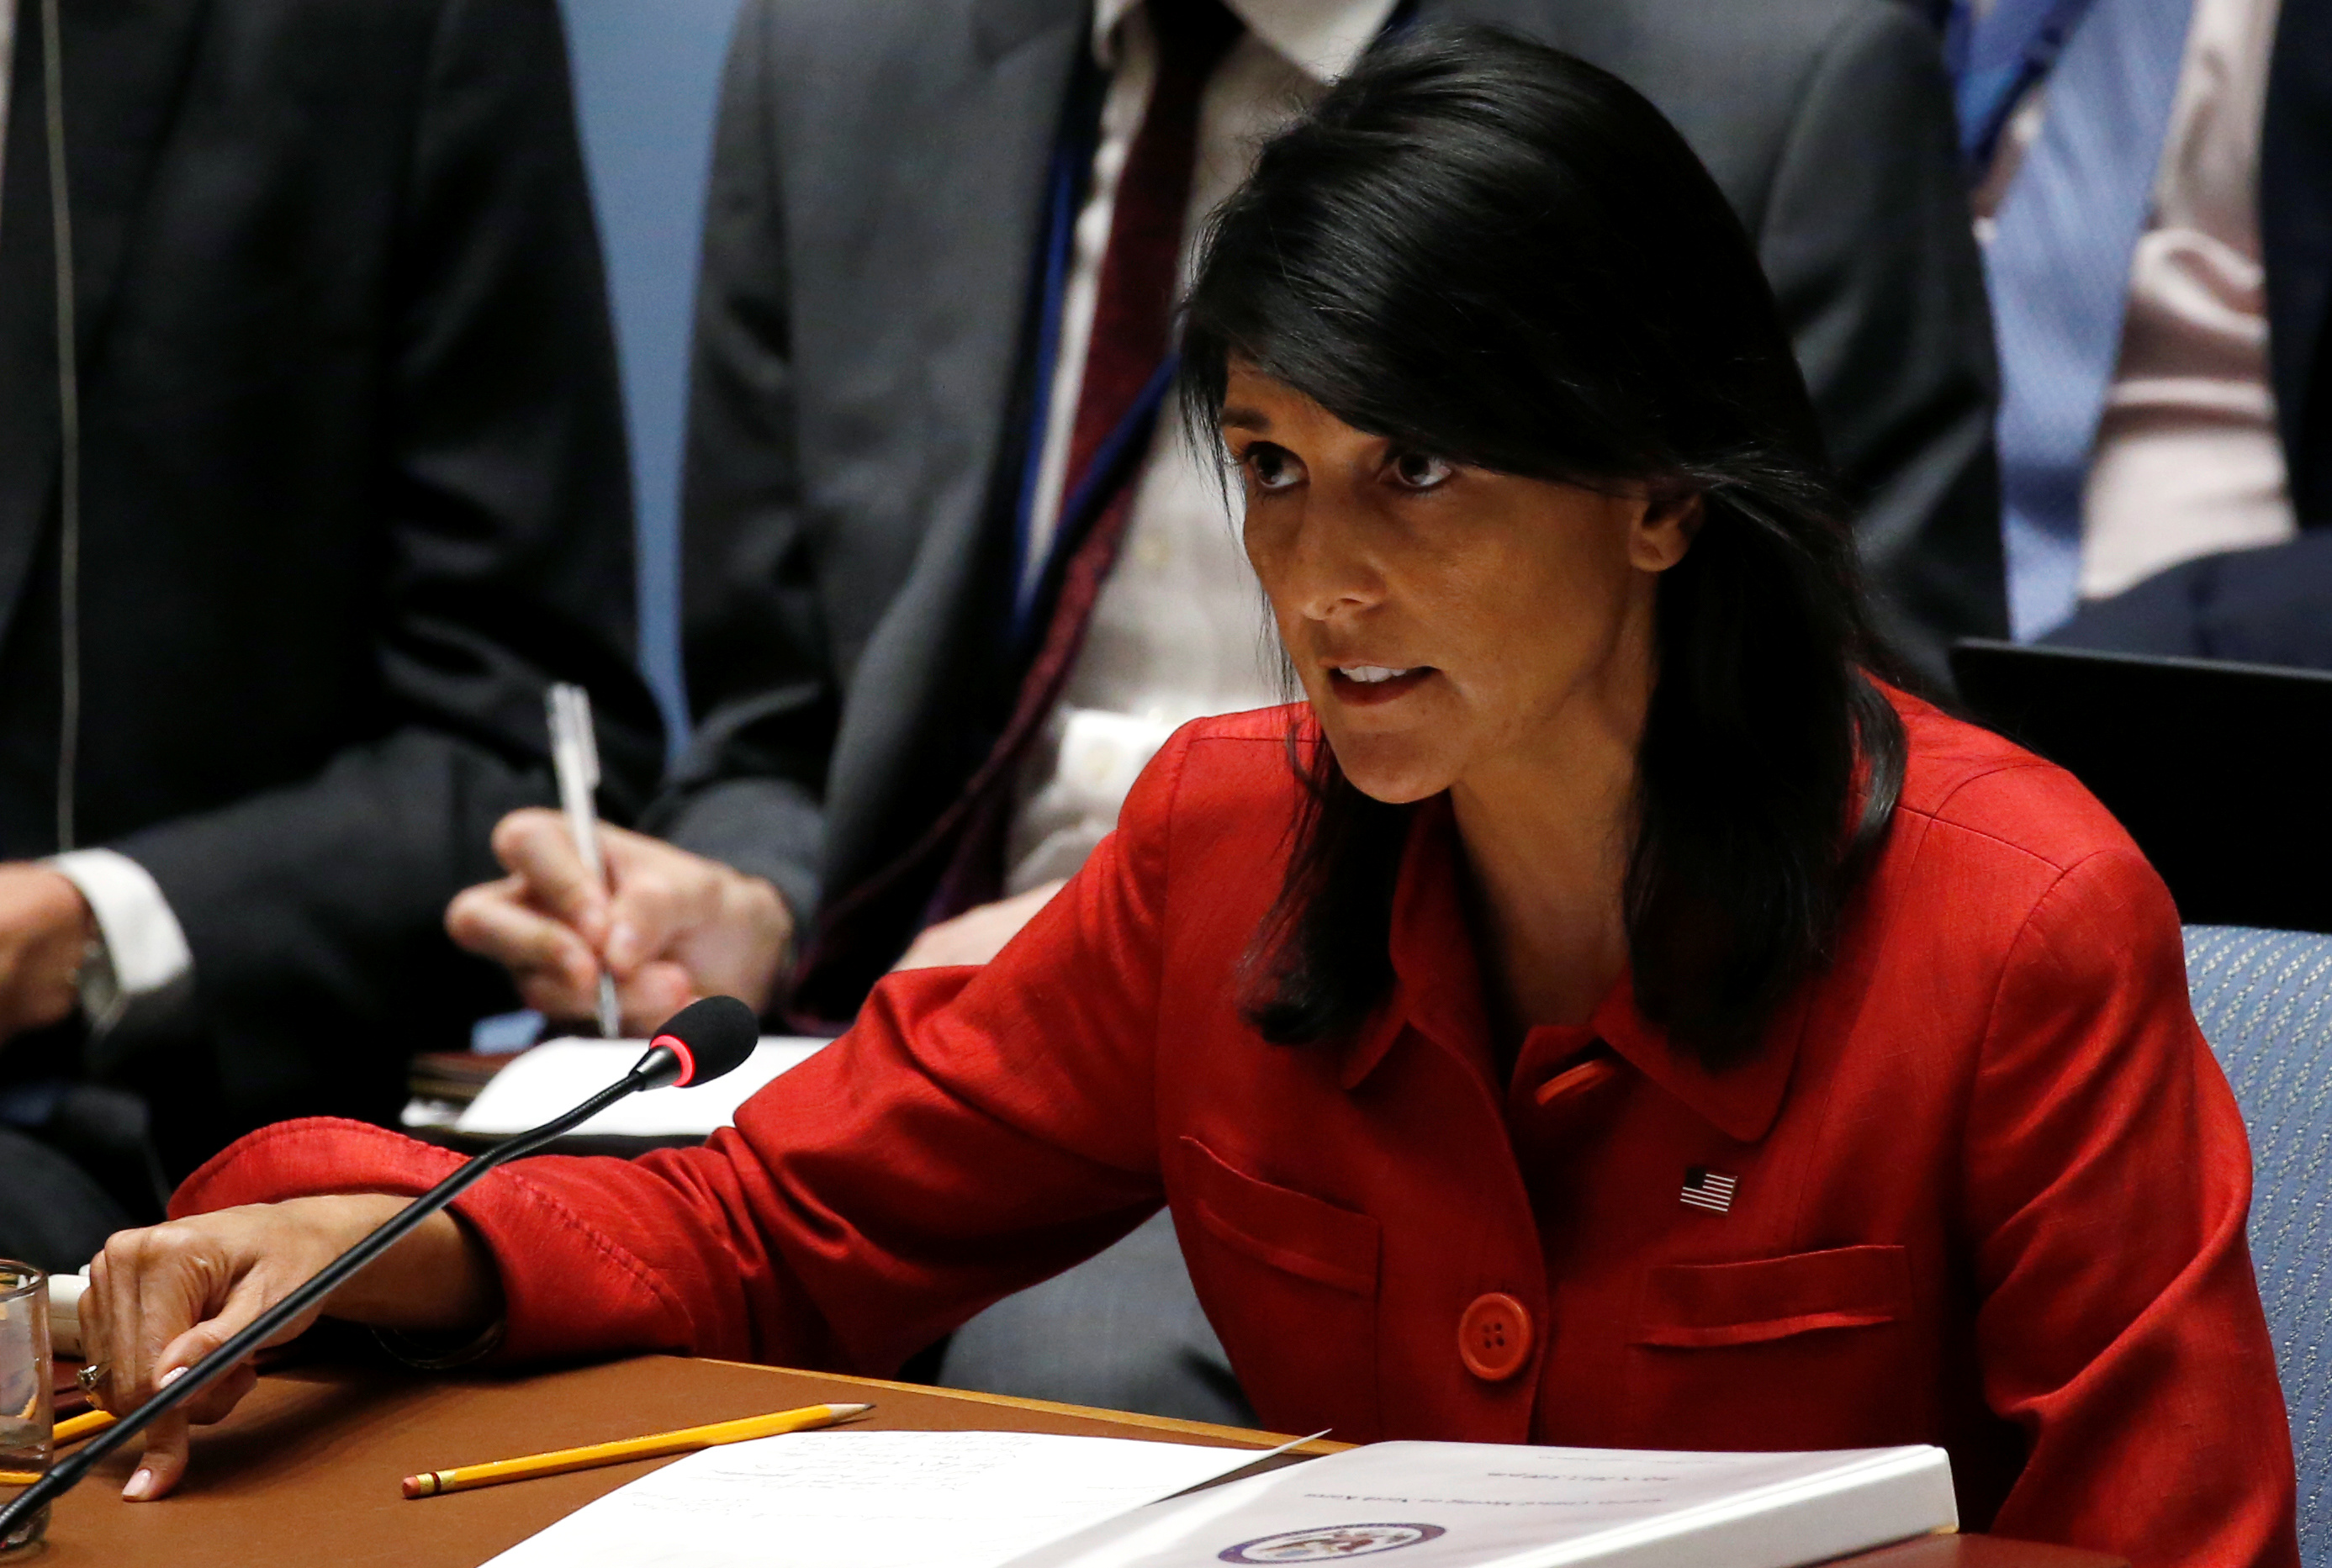 U.S. Ambassador to the United Nations Nikki Haley directs comments to the Russian delegation at the conclusion of a U.N. Security Council meeting to discuss the recent ballistic missile launch by North Korea at U.N. headquarters in New York on July 5, 2017. (REUTERS/Mike Segar)